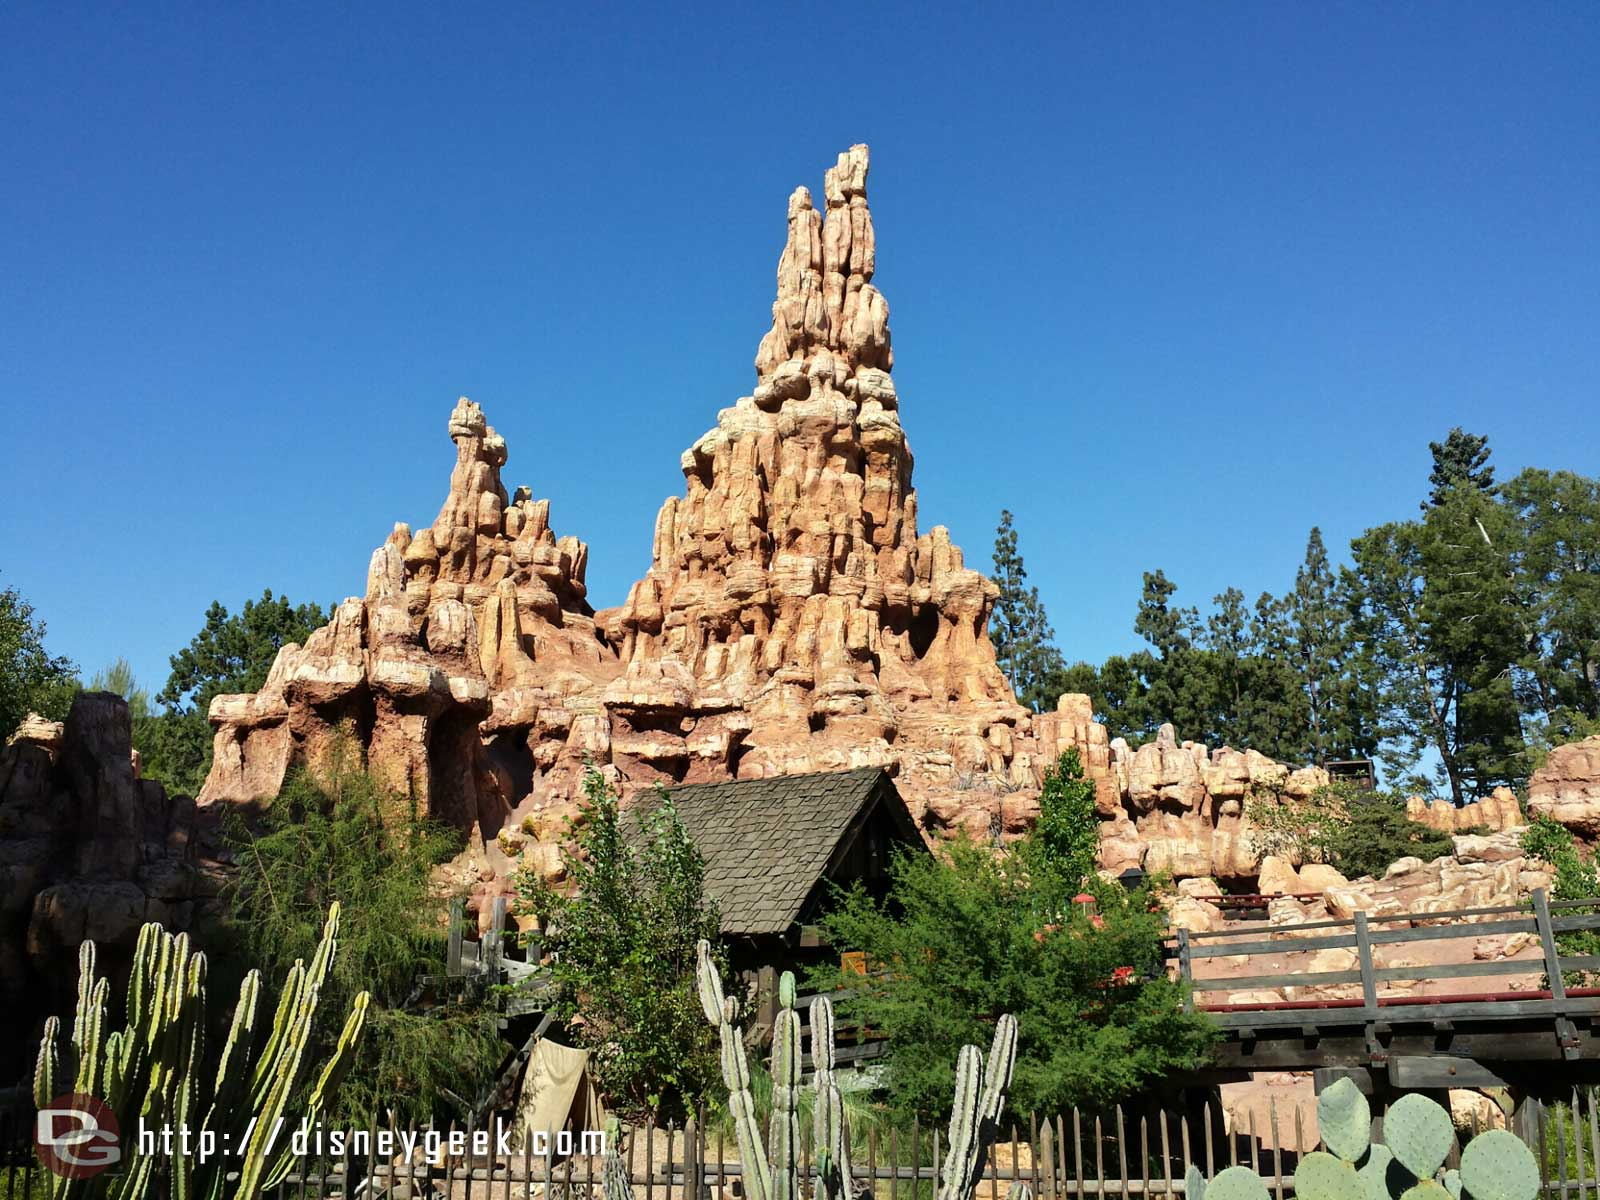 Big Thunder #Disneyland on this clear afternoon